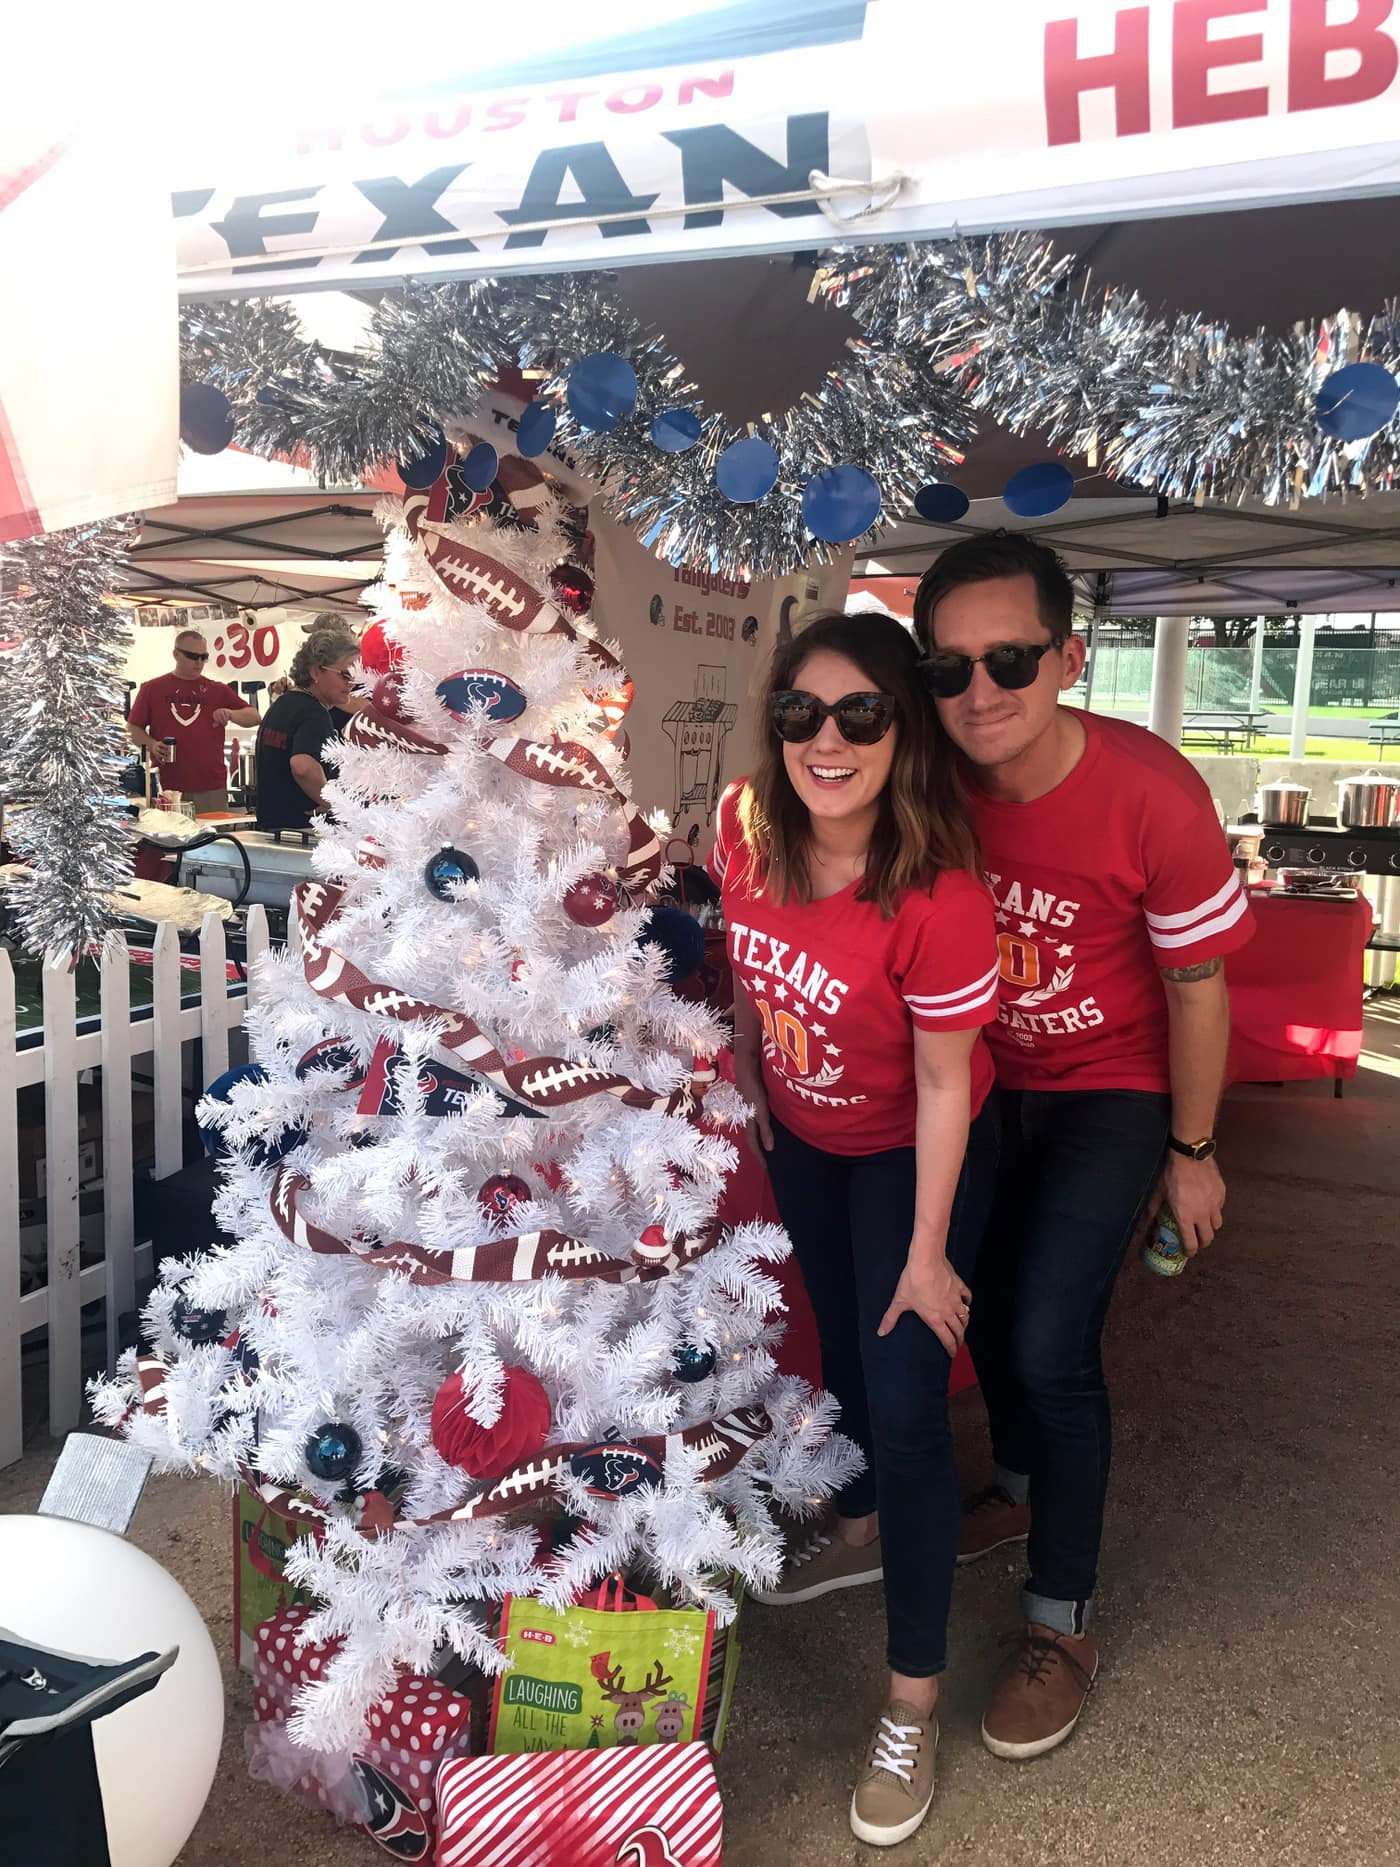 Texans tailgate and a Happy 2017 and a Behind The Scenes Lately Update by lifestyle blogger Ashley Rose of Sugar and Cloth